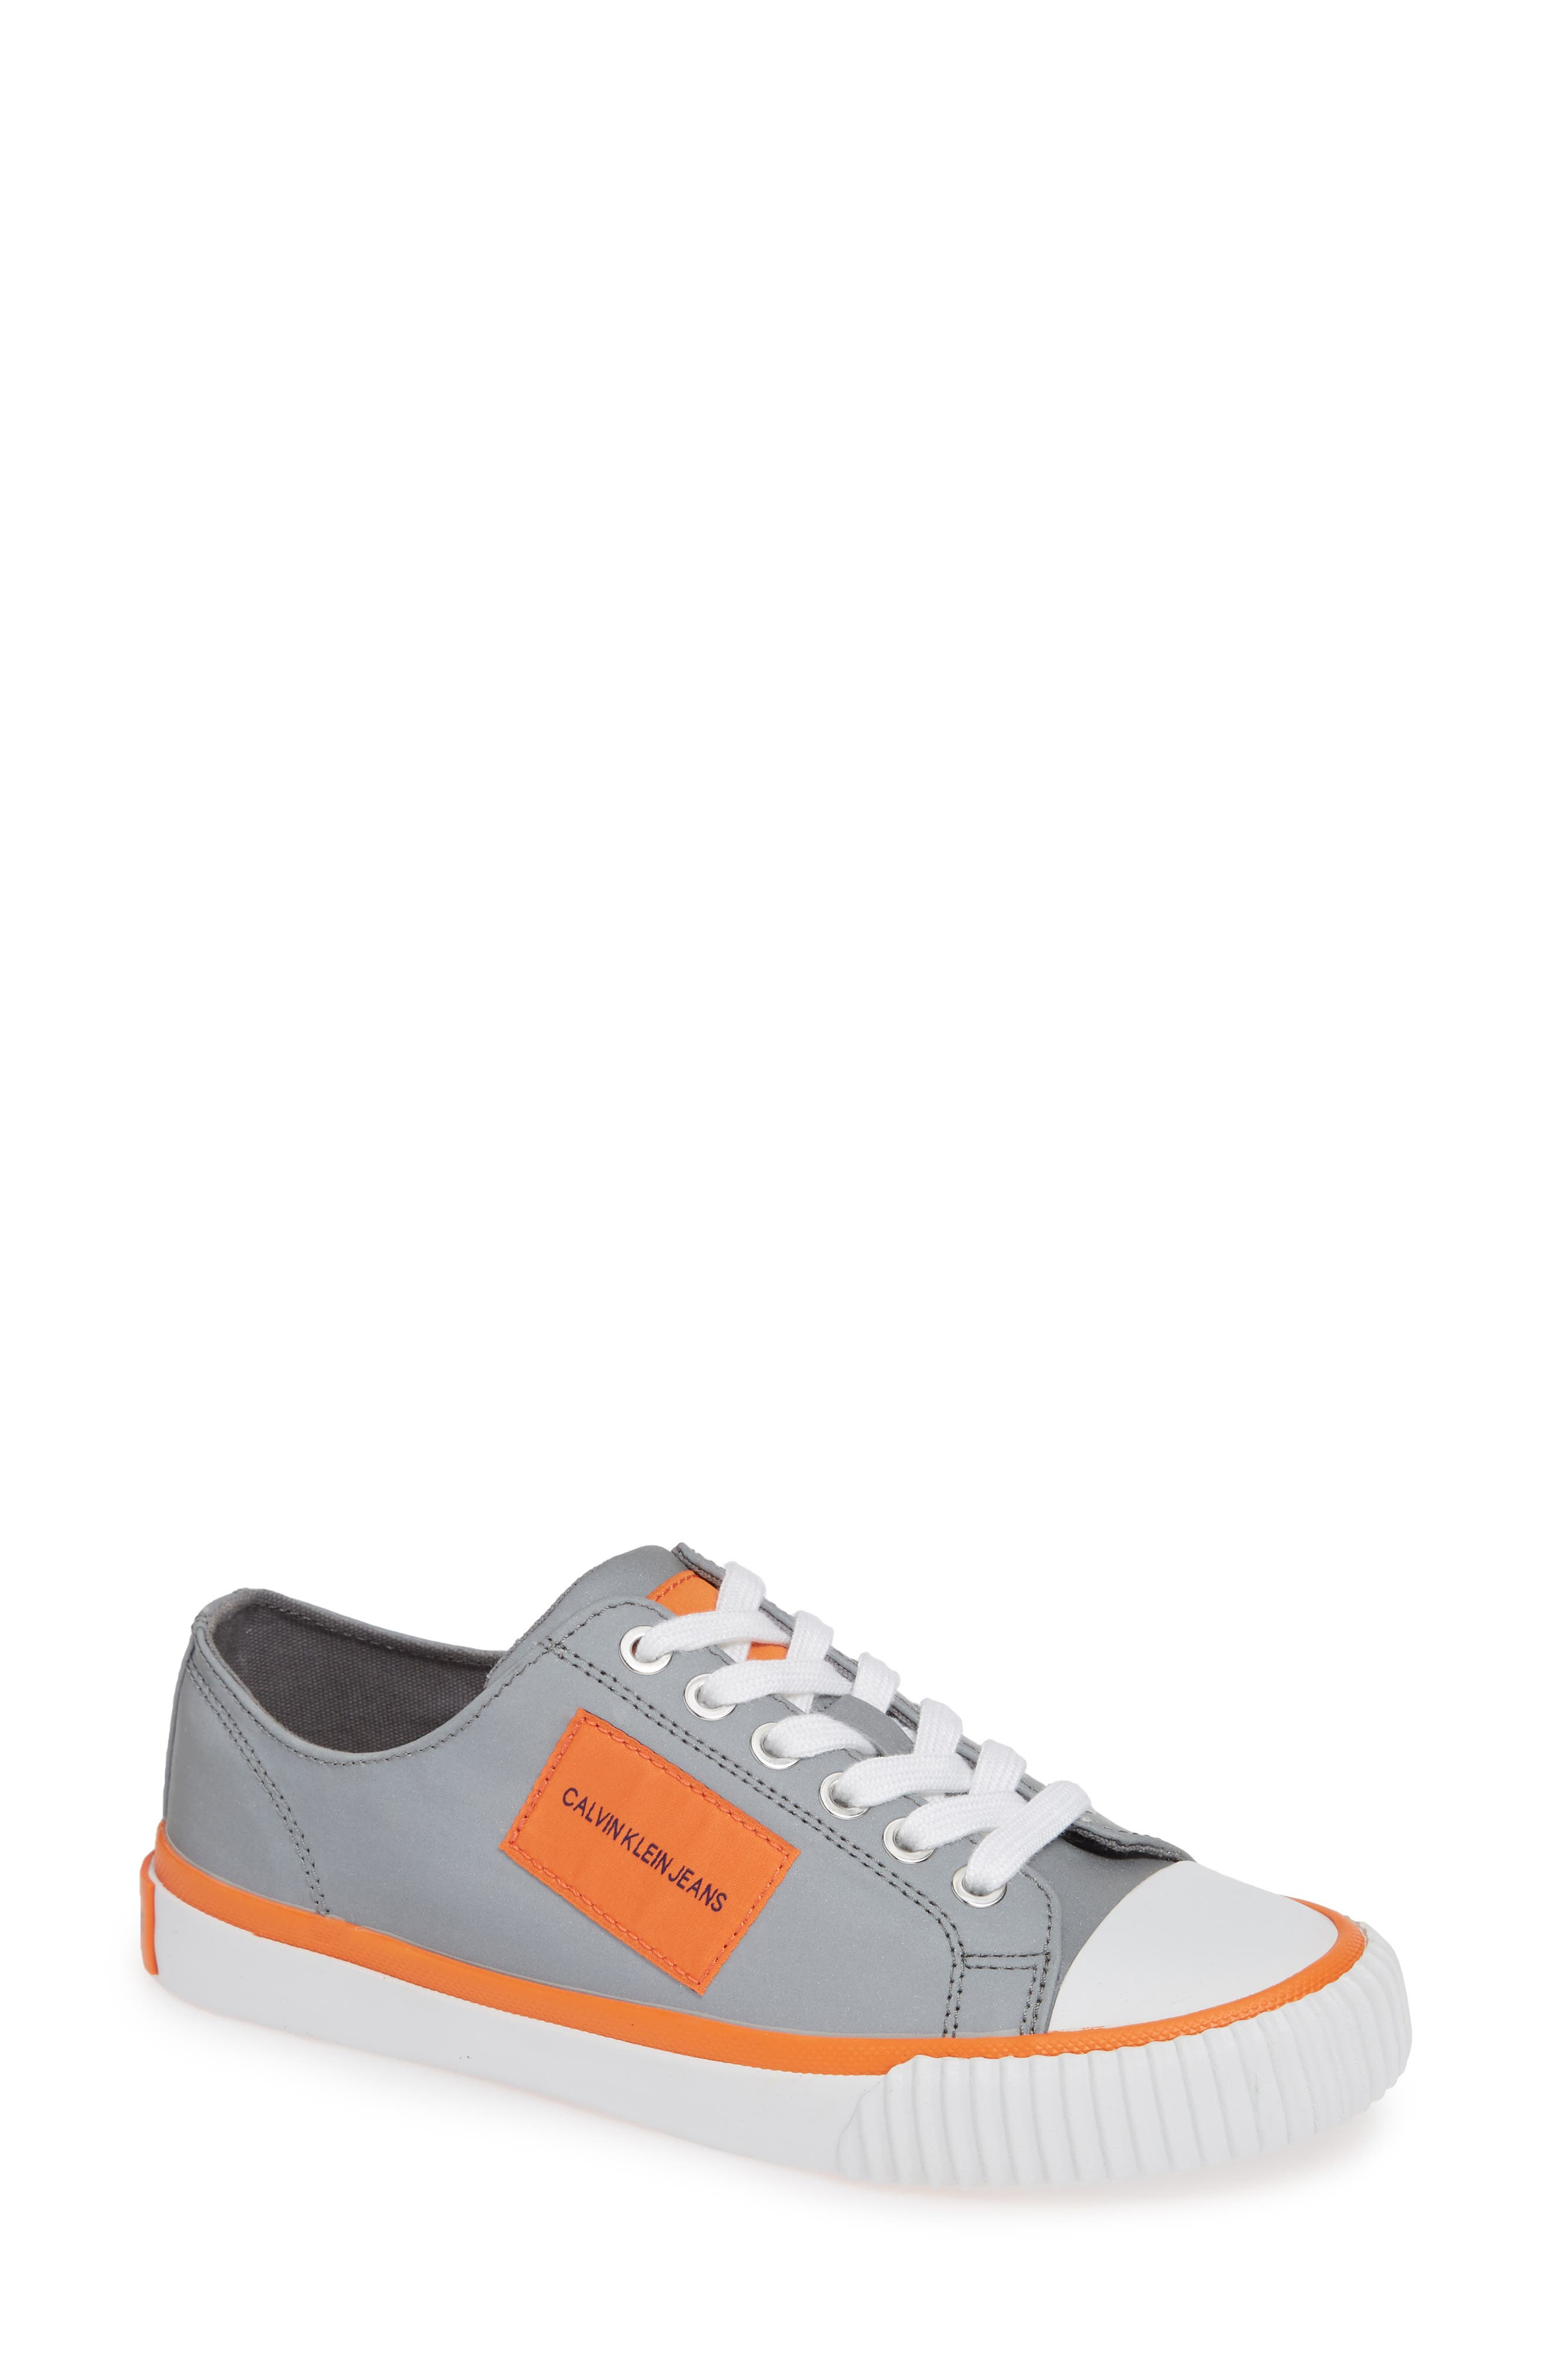 Ivory Lace-Up Sneaker,                             Main thumbnail 1, color,                             SILVER